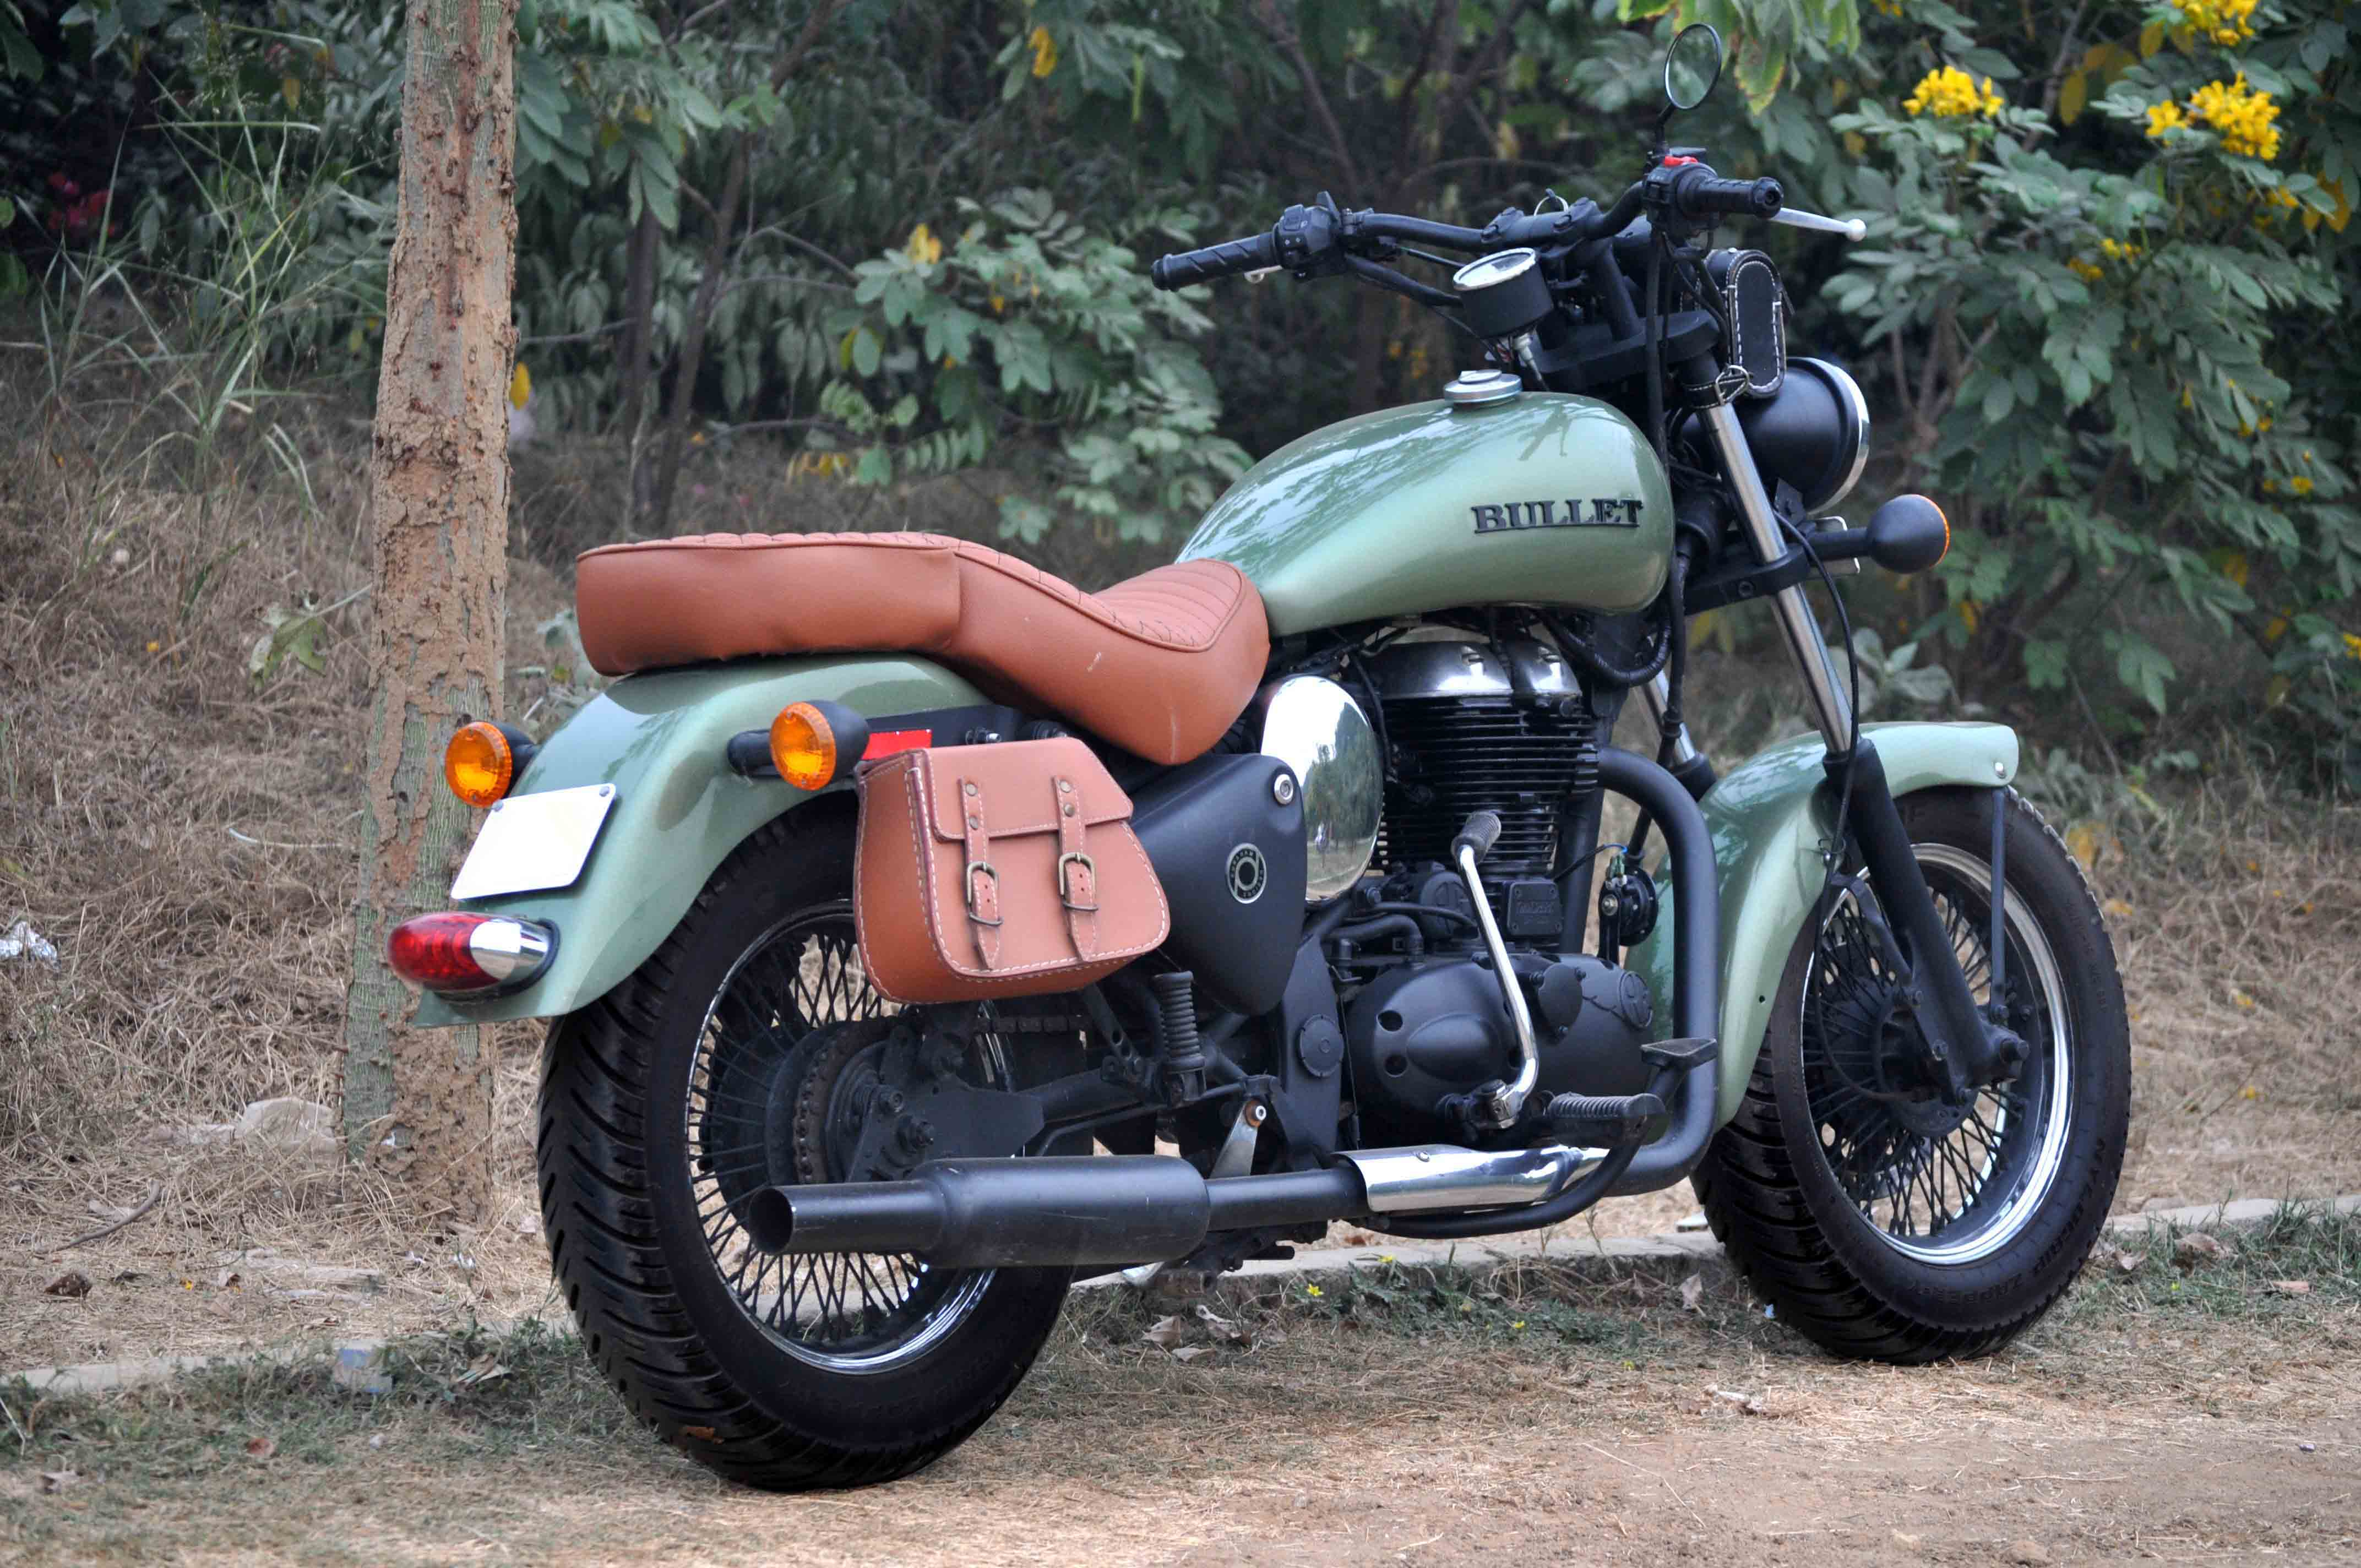 Modified Royal Enfield Classic 500 (battle green) by Puranam Designs